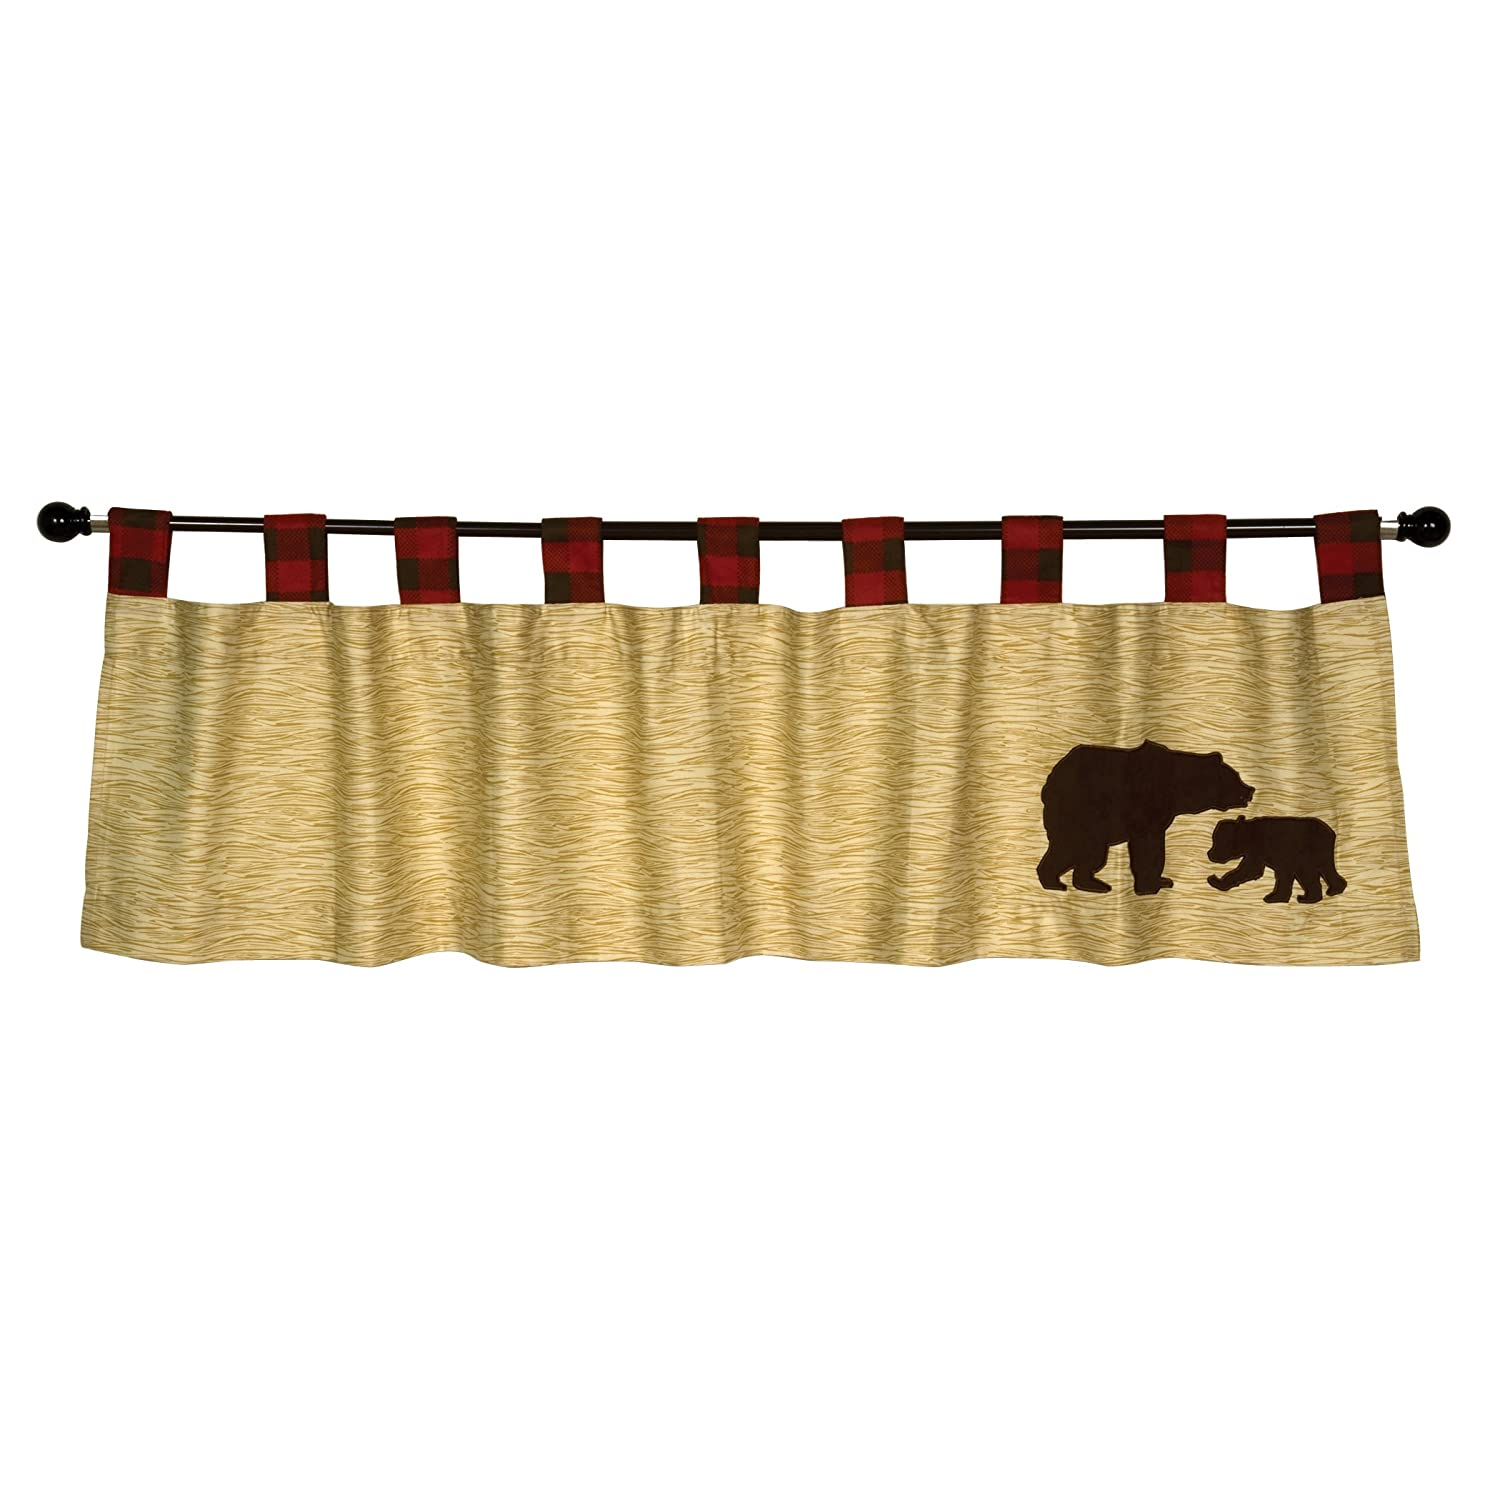 Trend Lab Northwoods Window Valance, Red/Tan